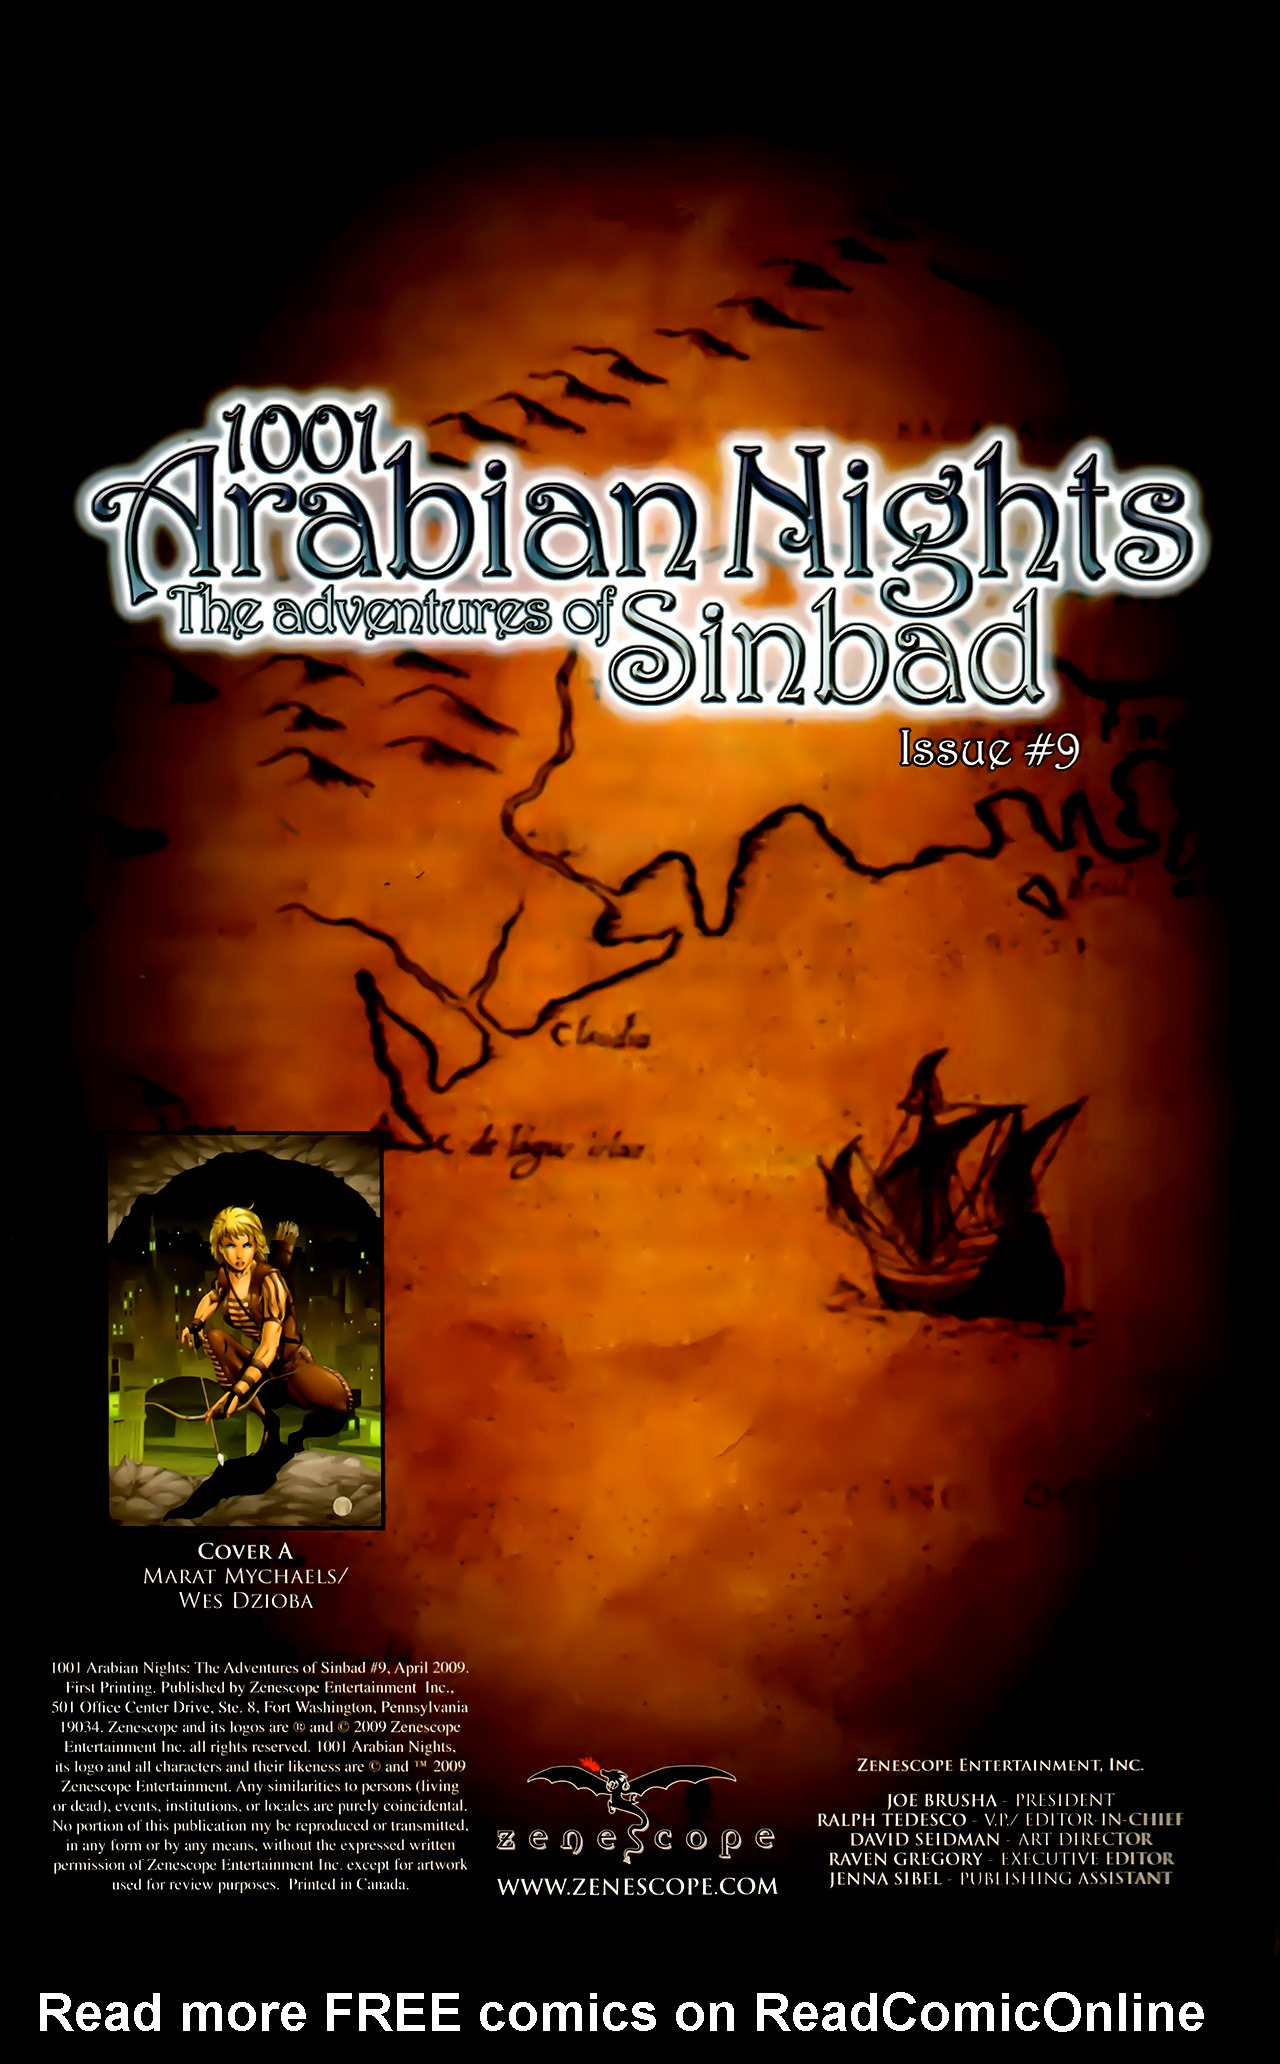 Read online 1001 Arabian Nights: The Adventures of Sinbad comic -  Issue #9 - 2